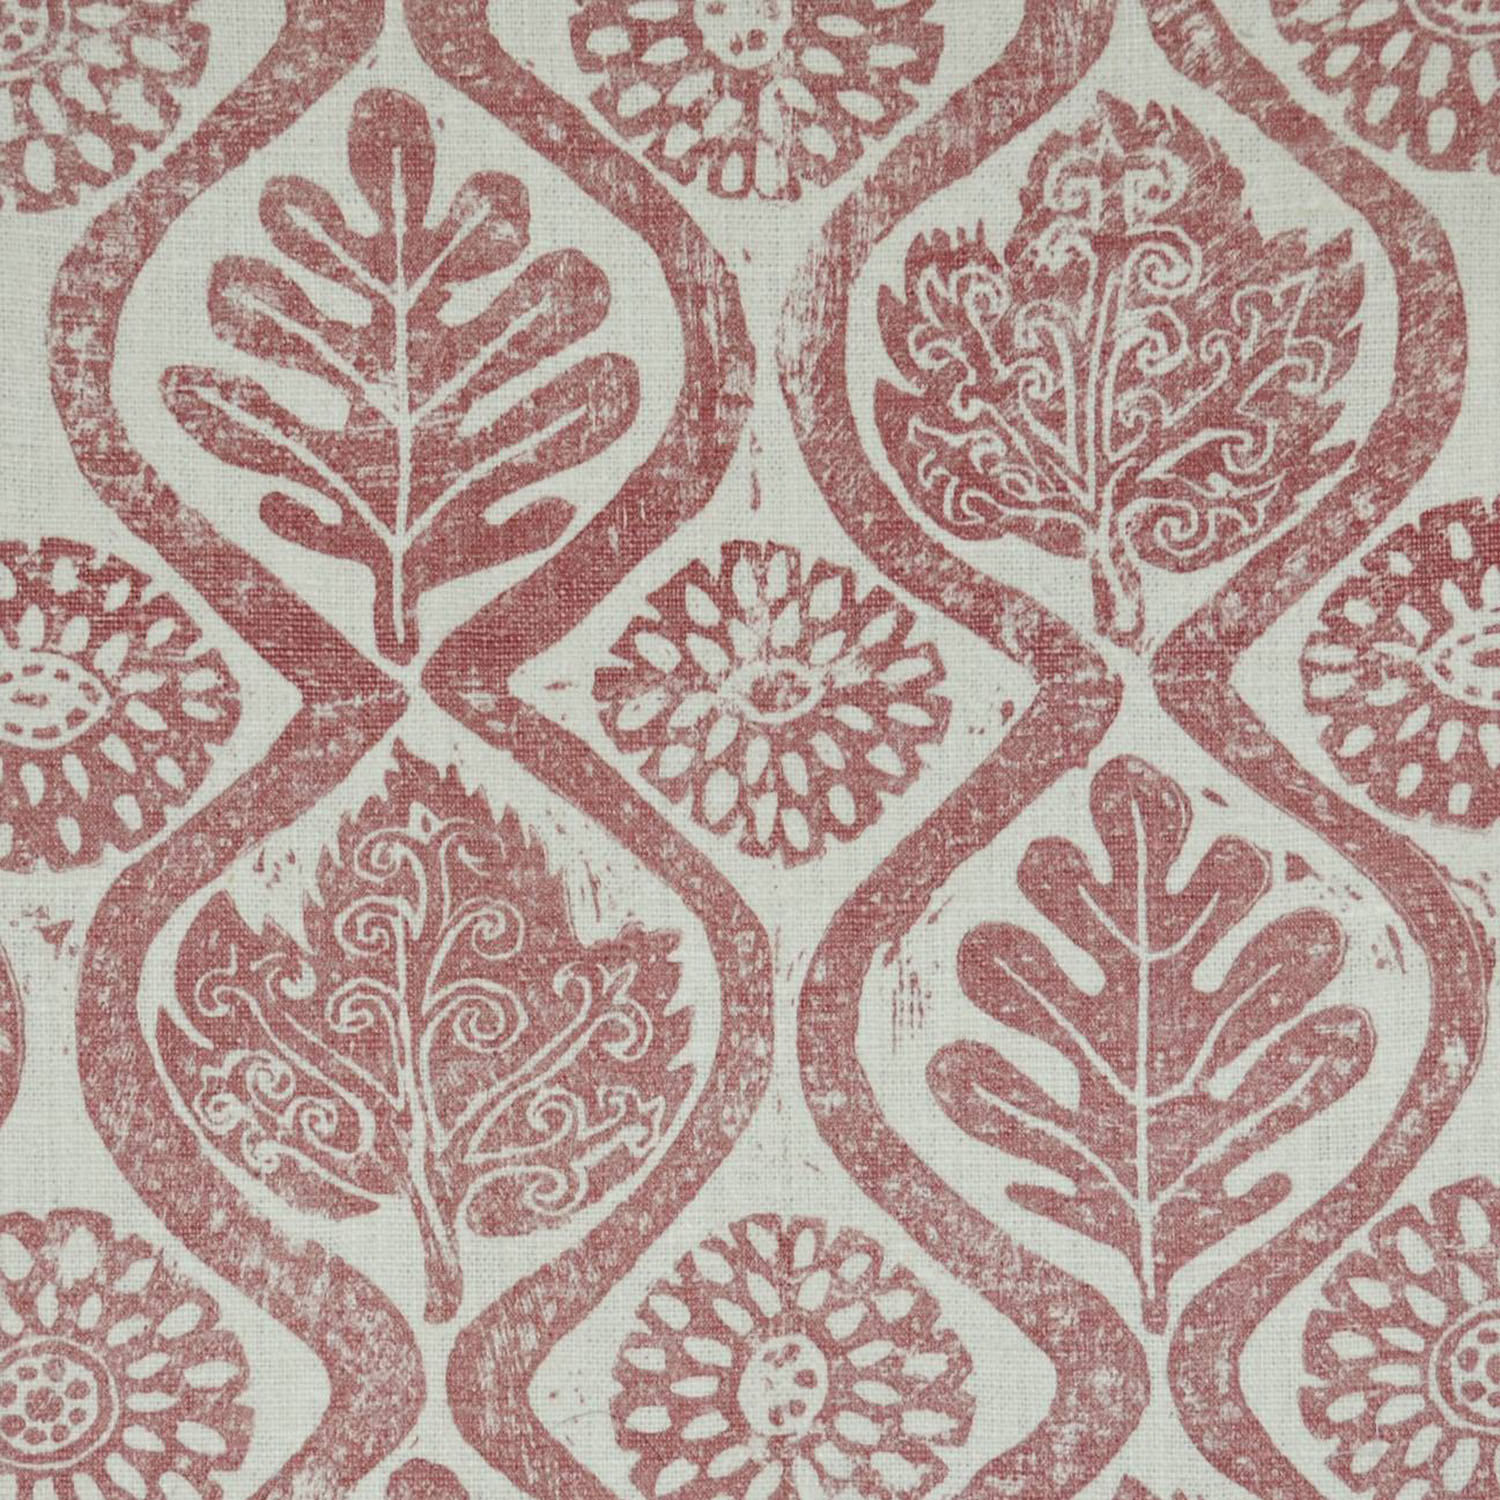 <p><strong>OAKLEAVES</strong>pink 6200-03<a href=/the-peggy-angus-collection/oakleaves-pink-6200-03>More →</a></p>